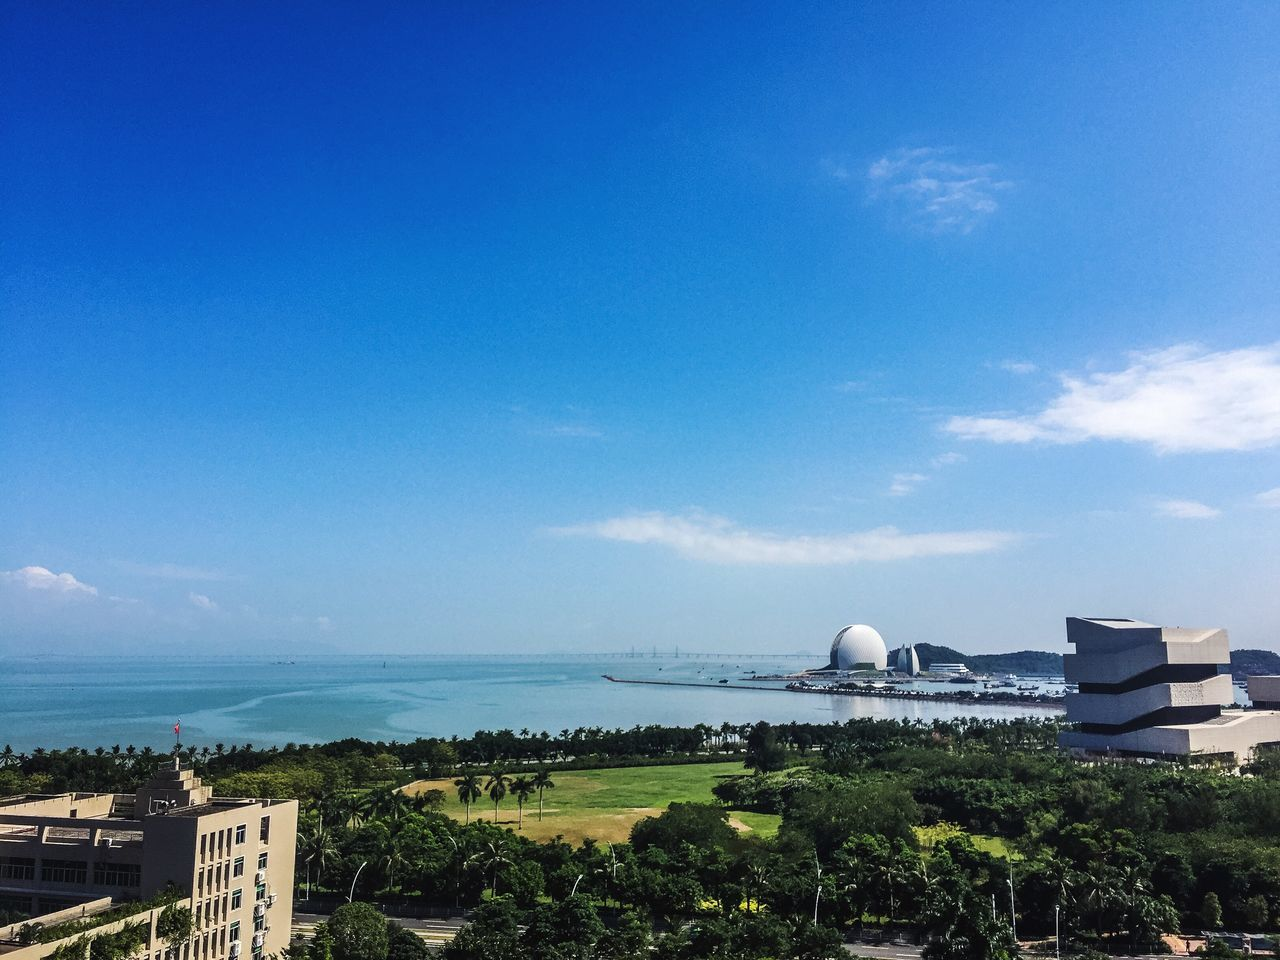 Architecture Blue Built Structure Sky Building Exterior Sea Outdoors No People Beauty In Nature Nature Water Day Scenics Tree Zhuhai Zhuhai Opera Zhuhai Museum Shell Sea Shell Opéra